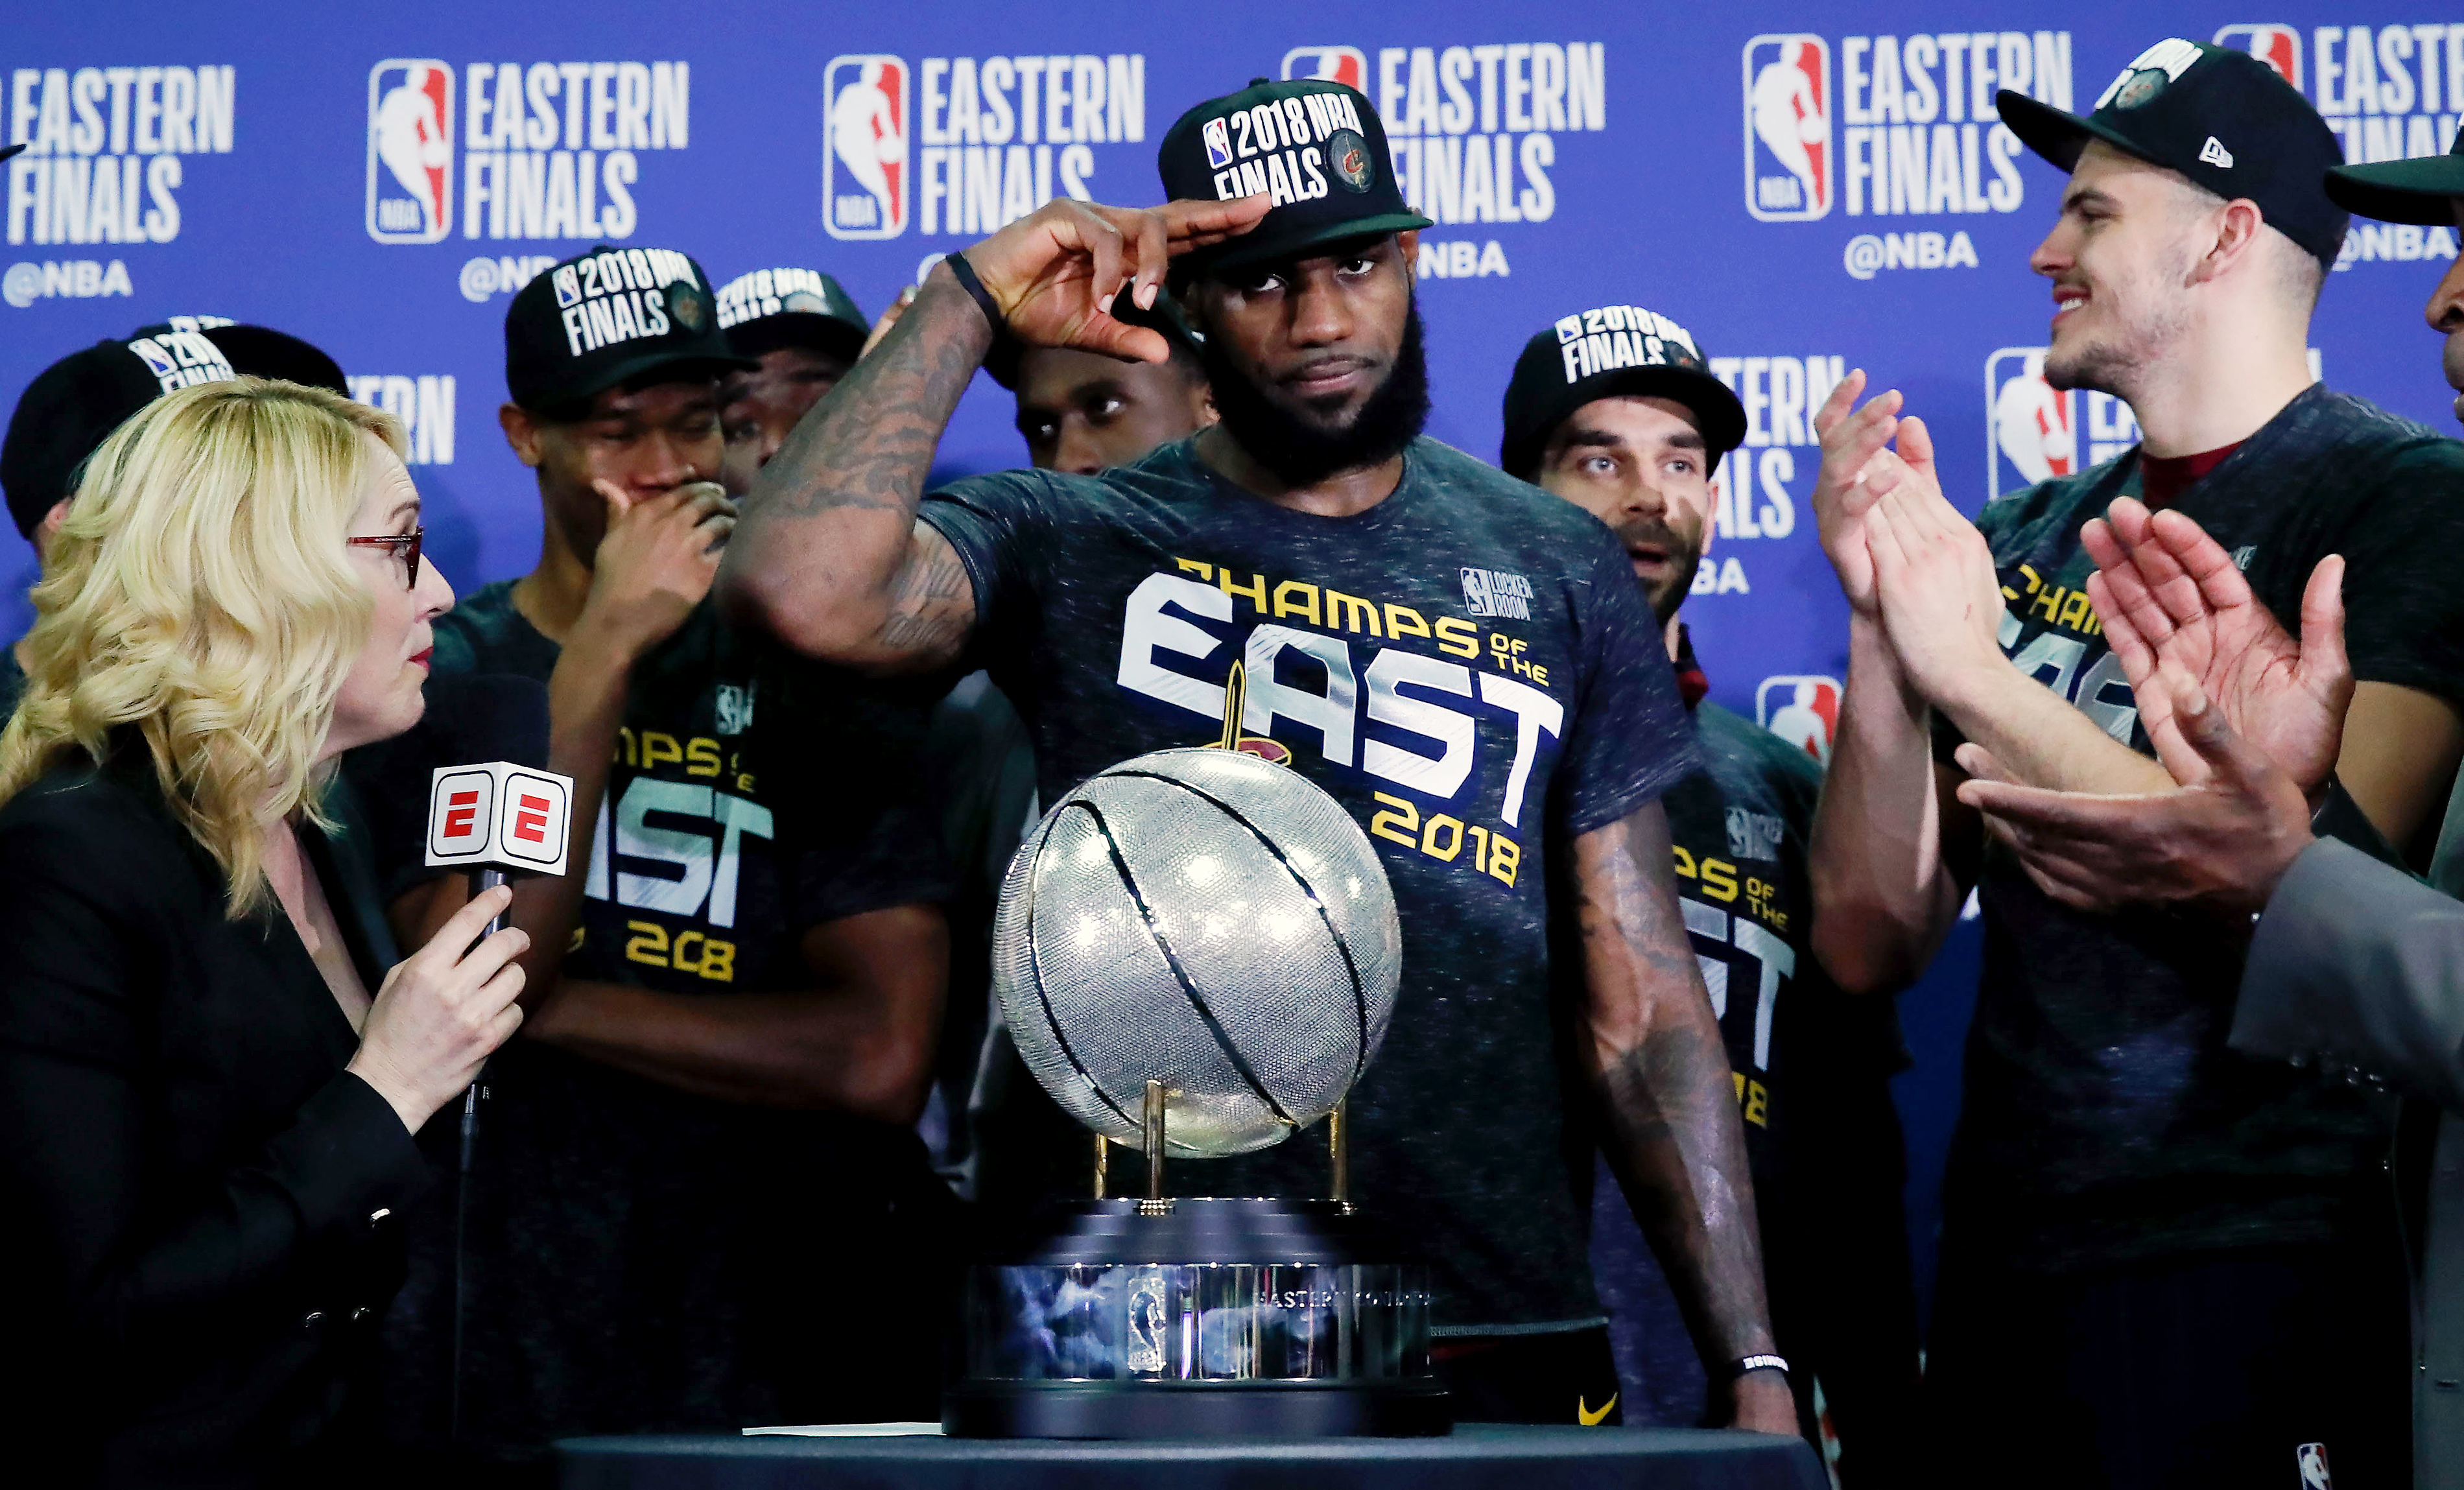 LeBron James reigns supreme over Eastern Conference yet again  cf9fdf04a